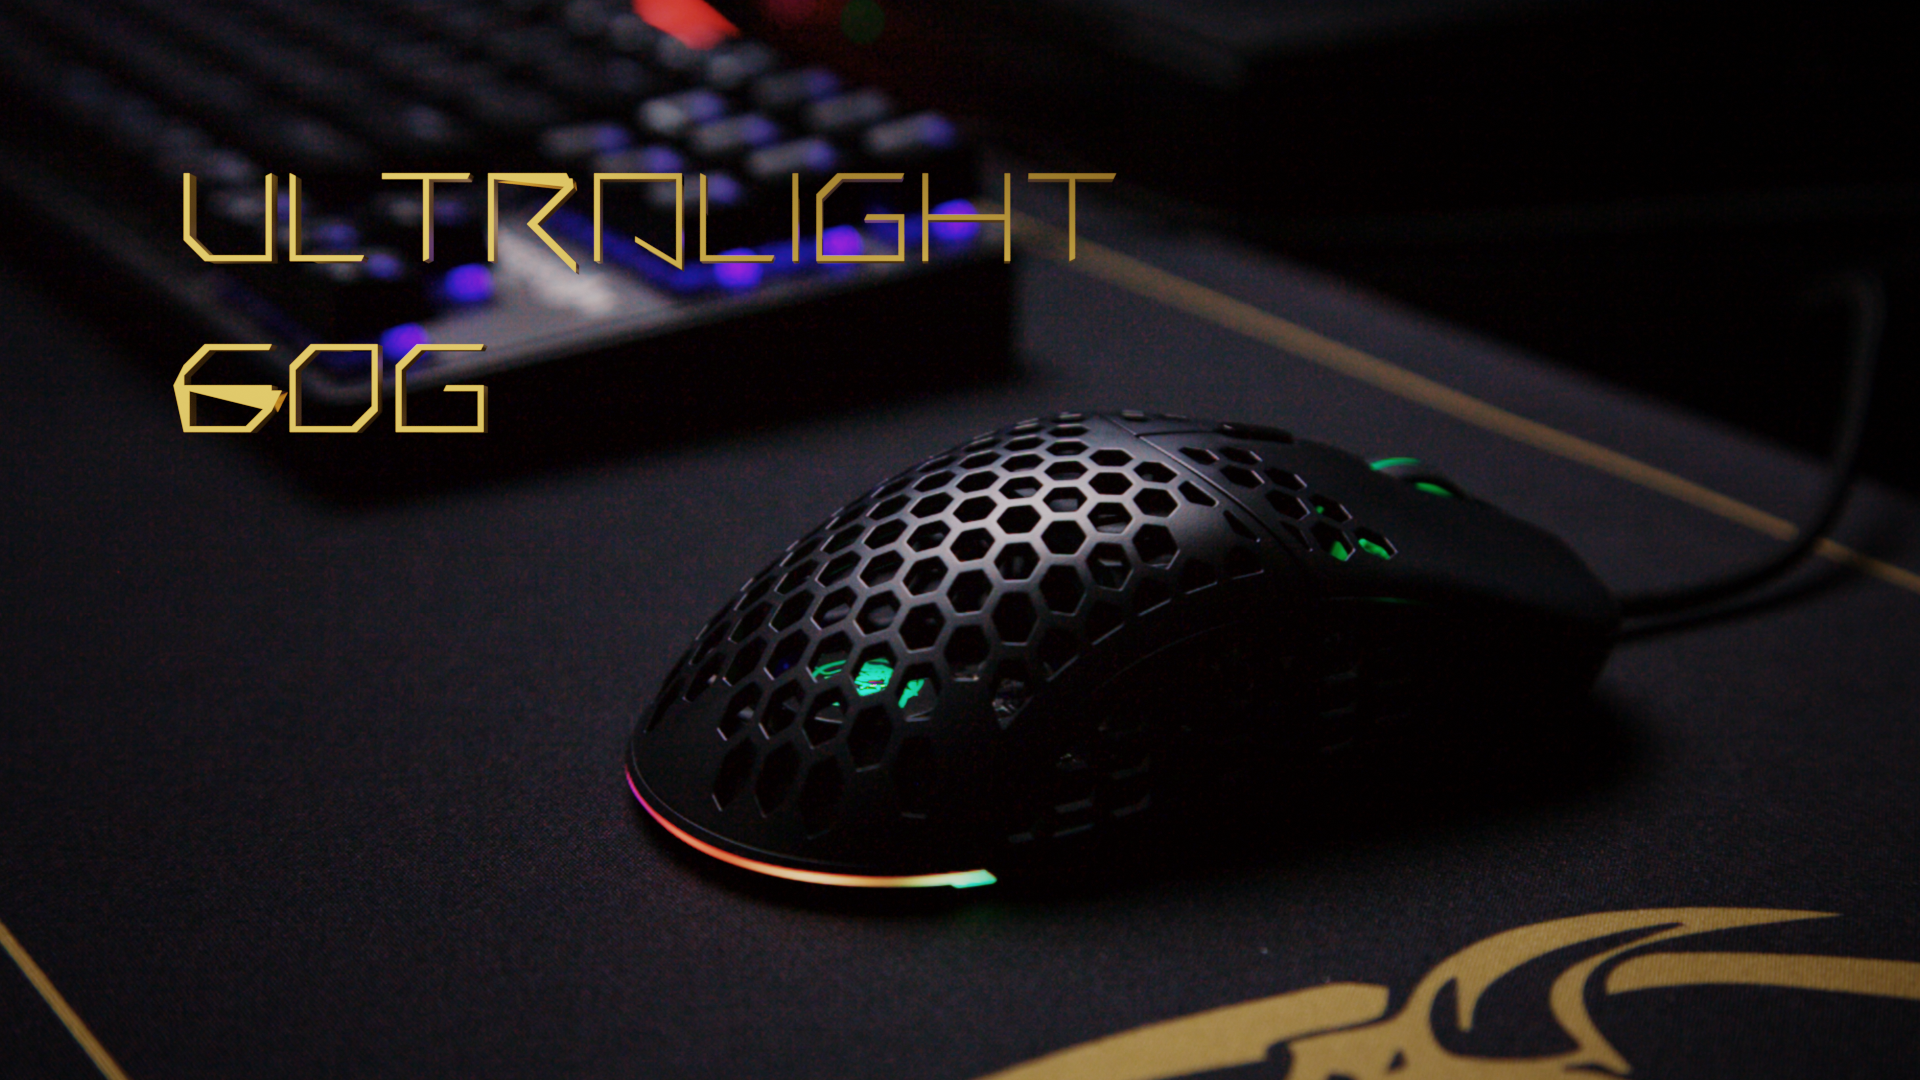 Only 60 grams with drag-free flexible cable. Make your mouse movement quick as funk.